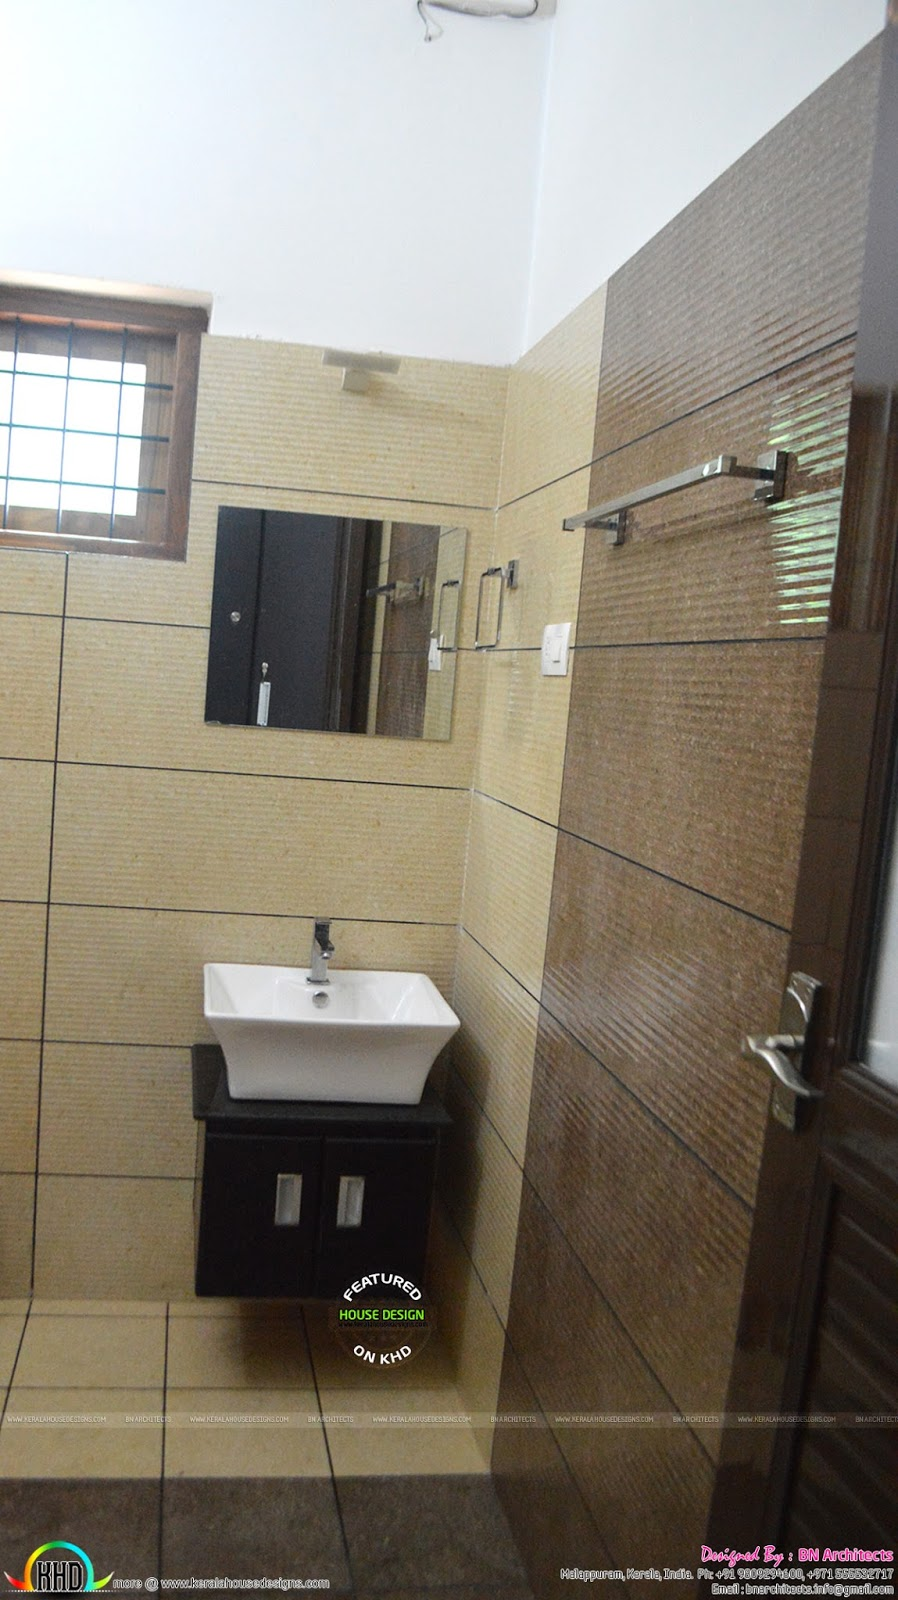 Luxury Kerala Home Bathrooms Bathrooms Tiles In Kerala Kerala Bathroom